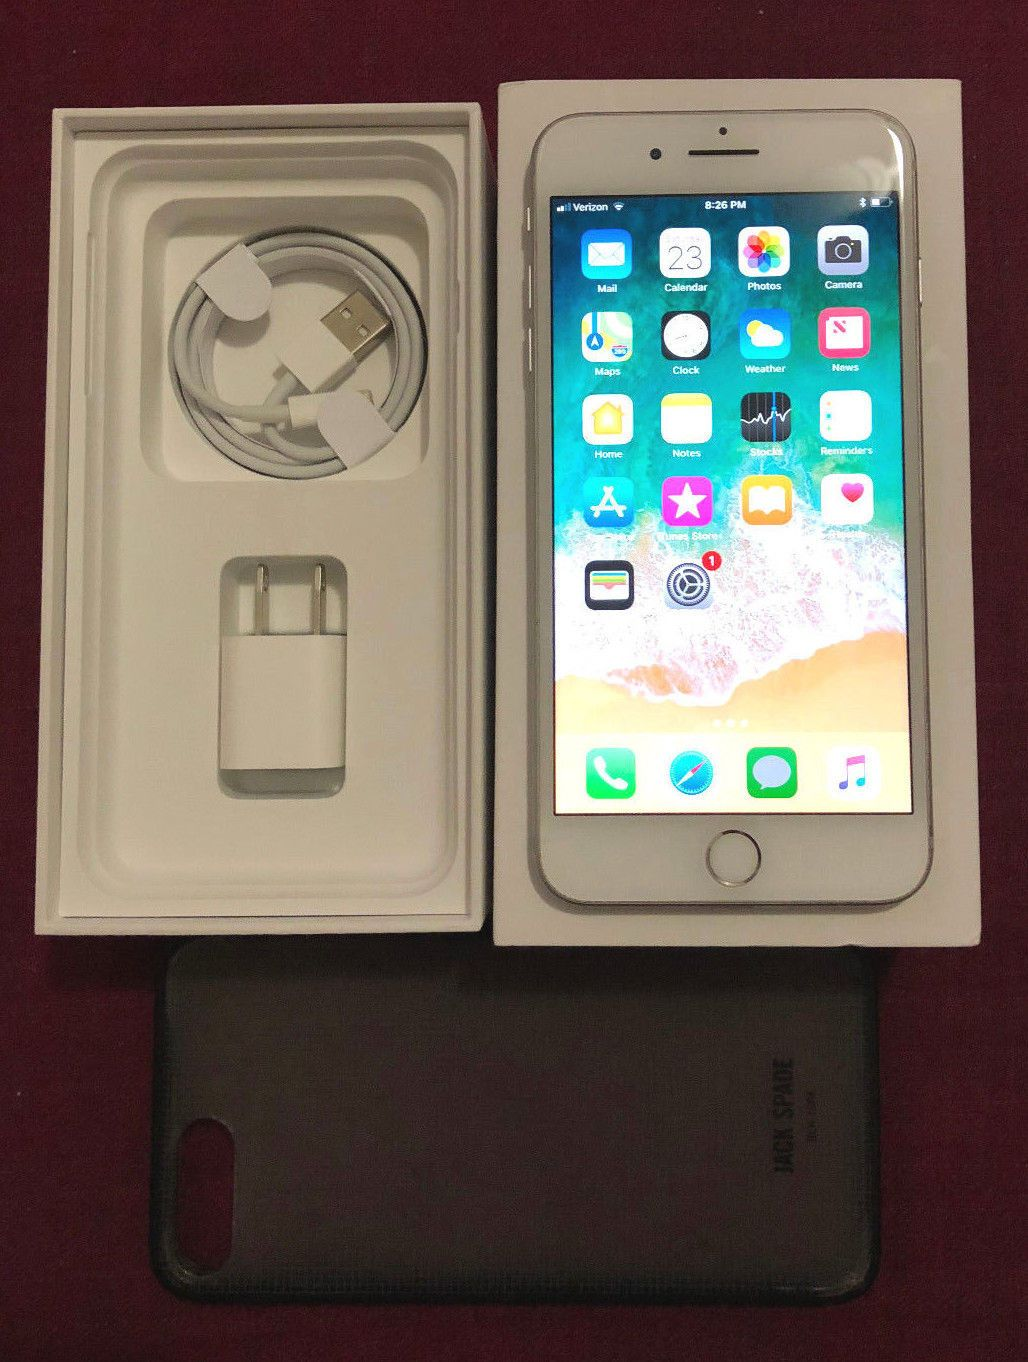 Apple Iphone 7 Plus 128gb Silver Factory Unlocked 5 5 12mp Smartphone A1661 Ebay Link Iphone 7 Plus Red Iphone 7 Plus Apple Iphone